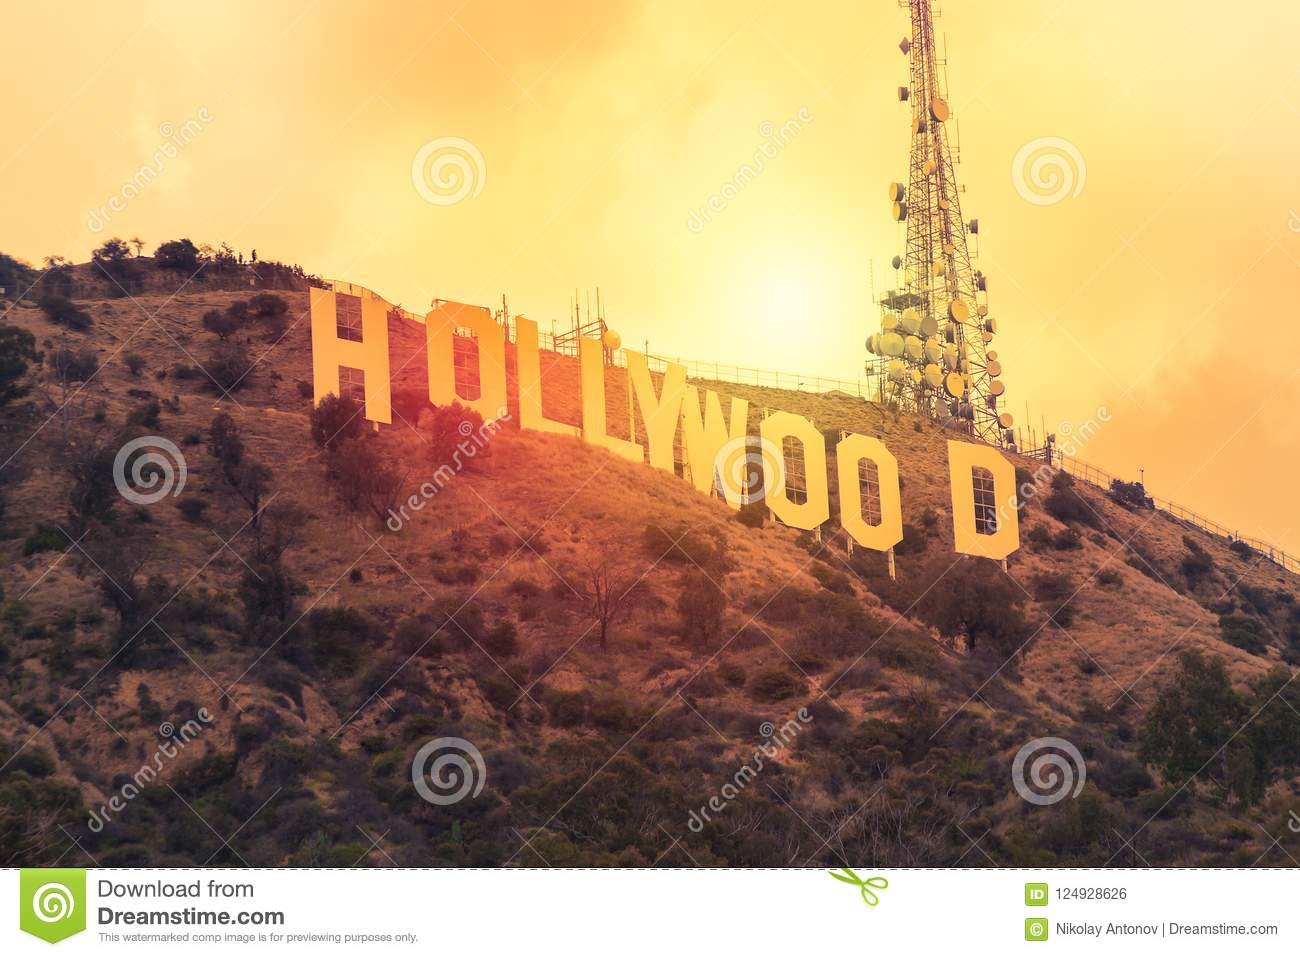 The world famous landmark Hollywood Sign during sunset in Los Angeles, United States.